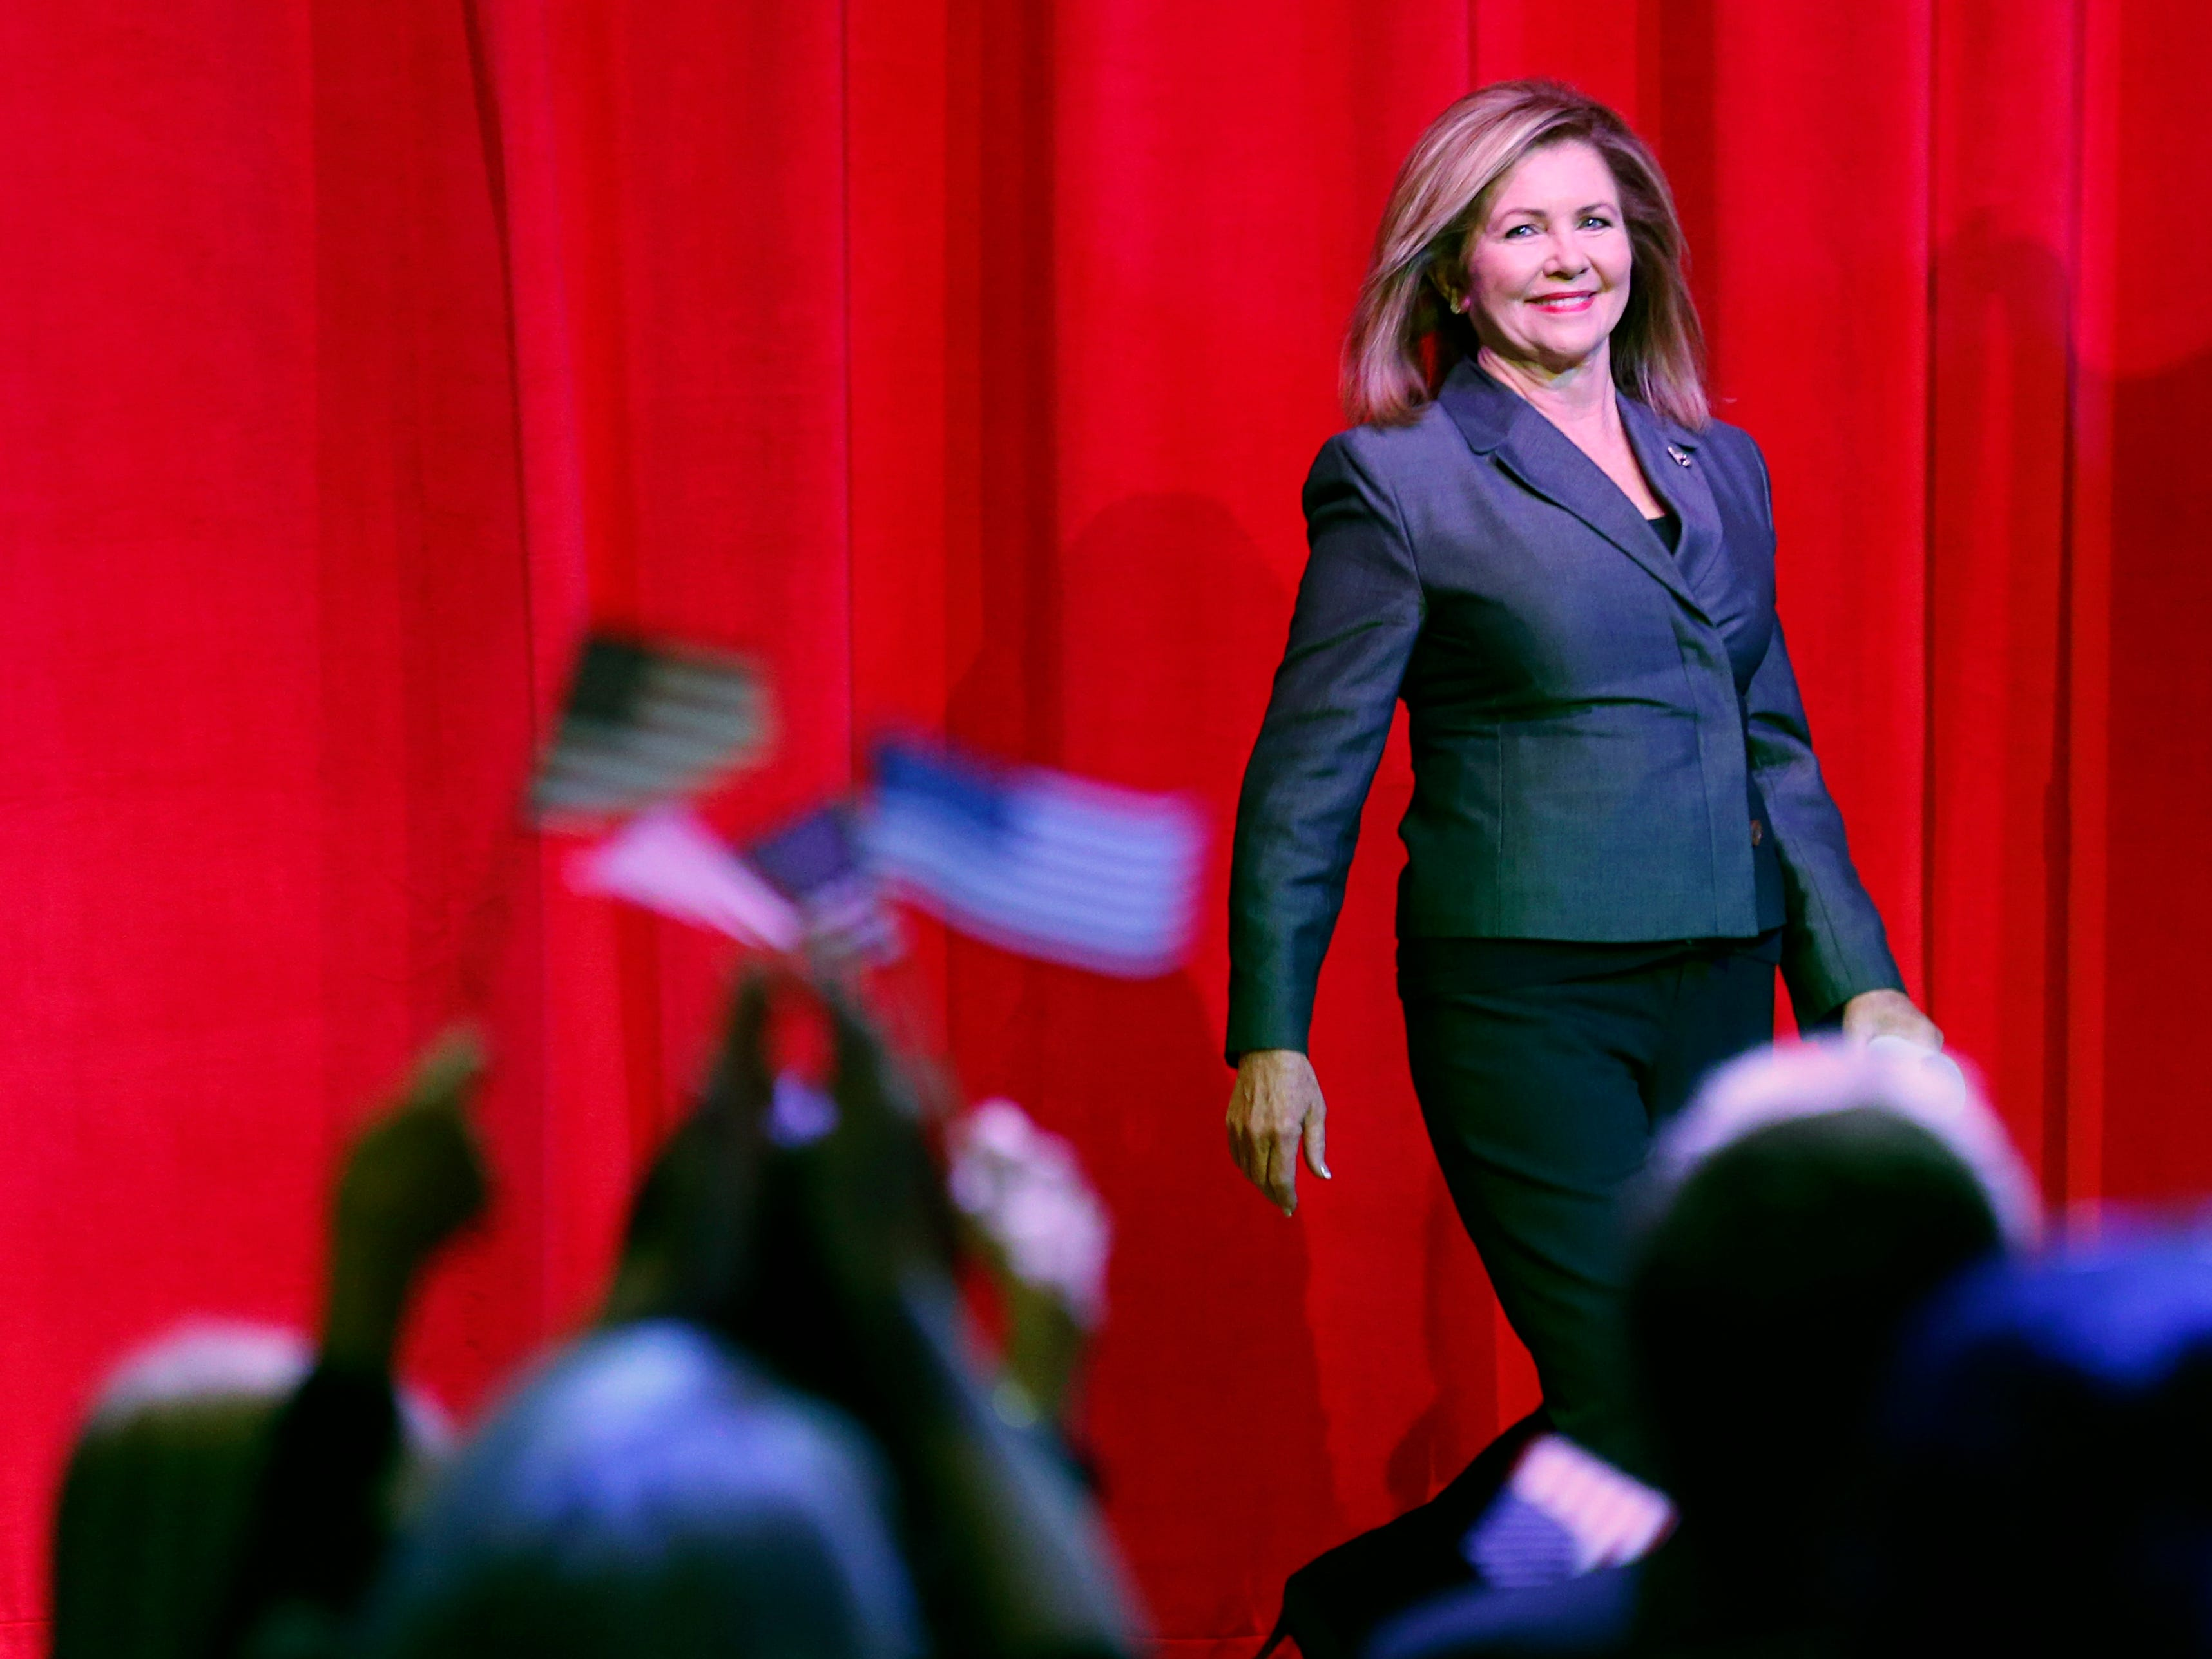 Flags wave as Republican U.S. Senate candidate Marsha Blackburn is introduced during a campaign event Sunday, Oct. 28, 2018, in Nashville, Tenn.